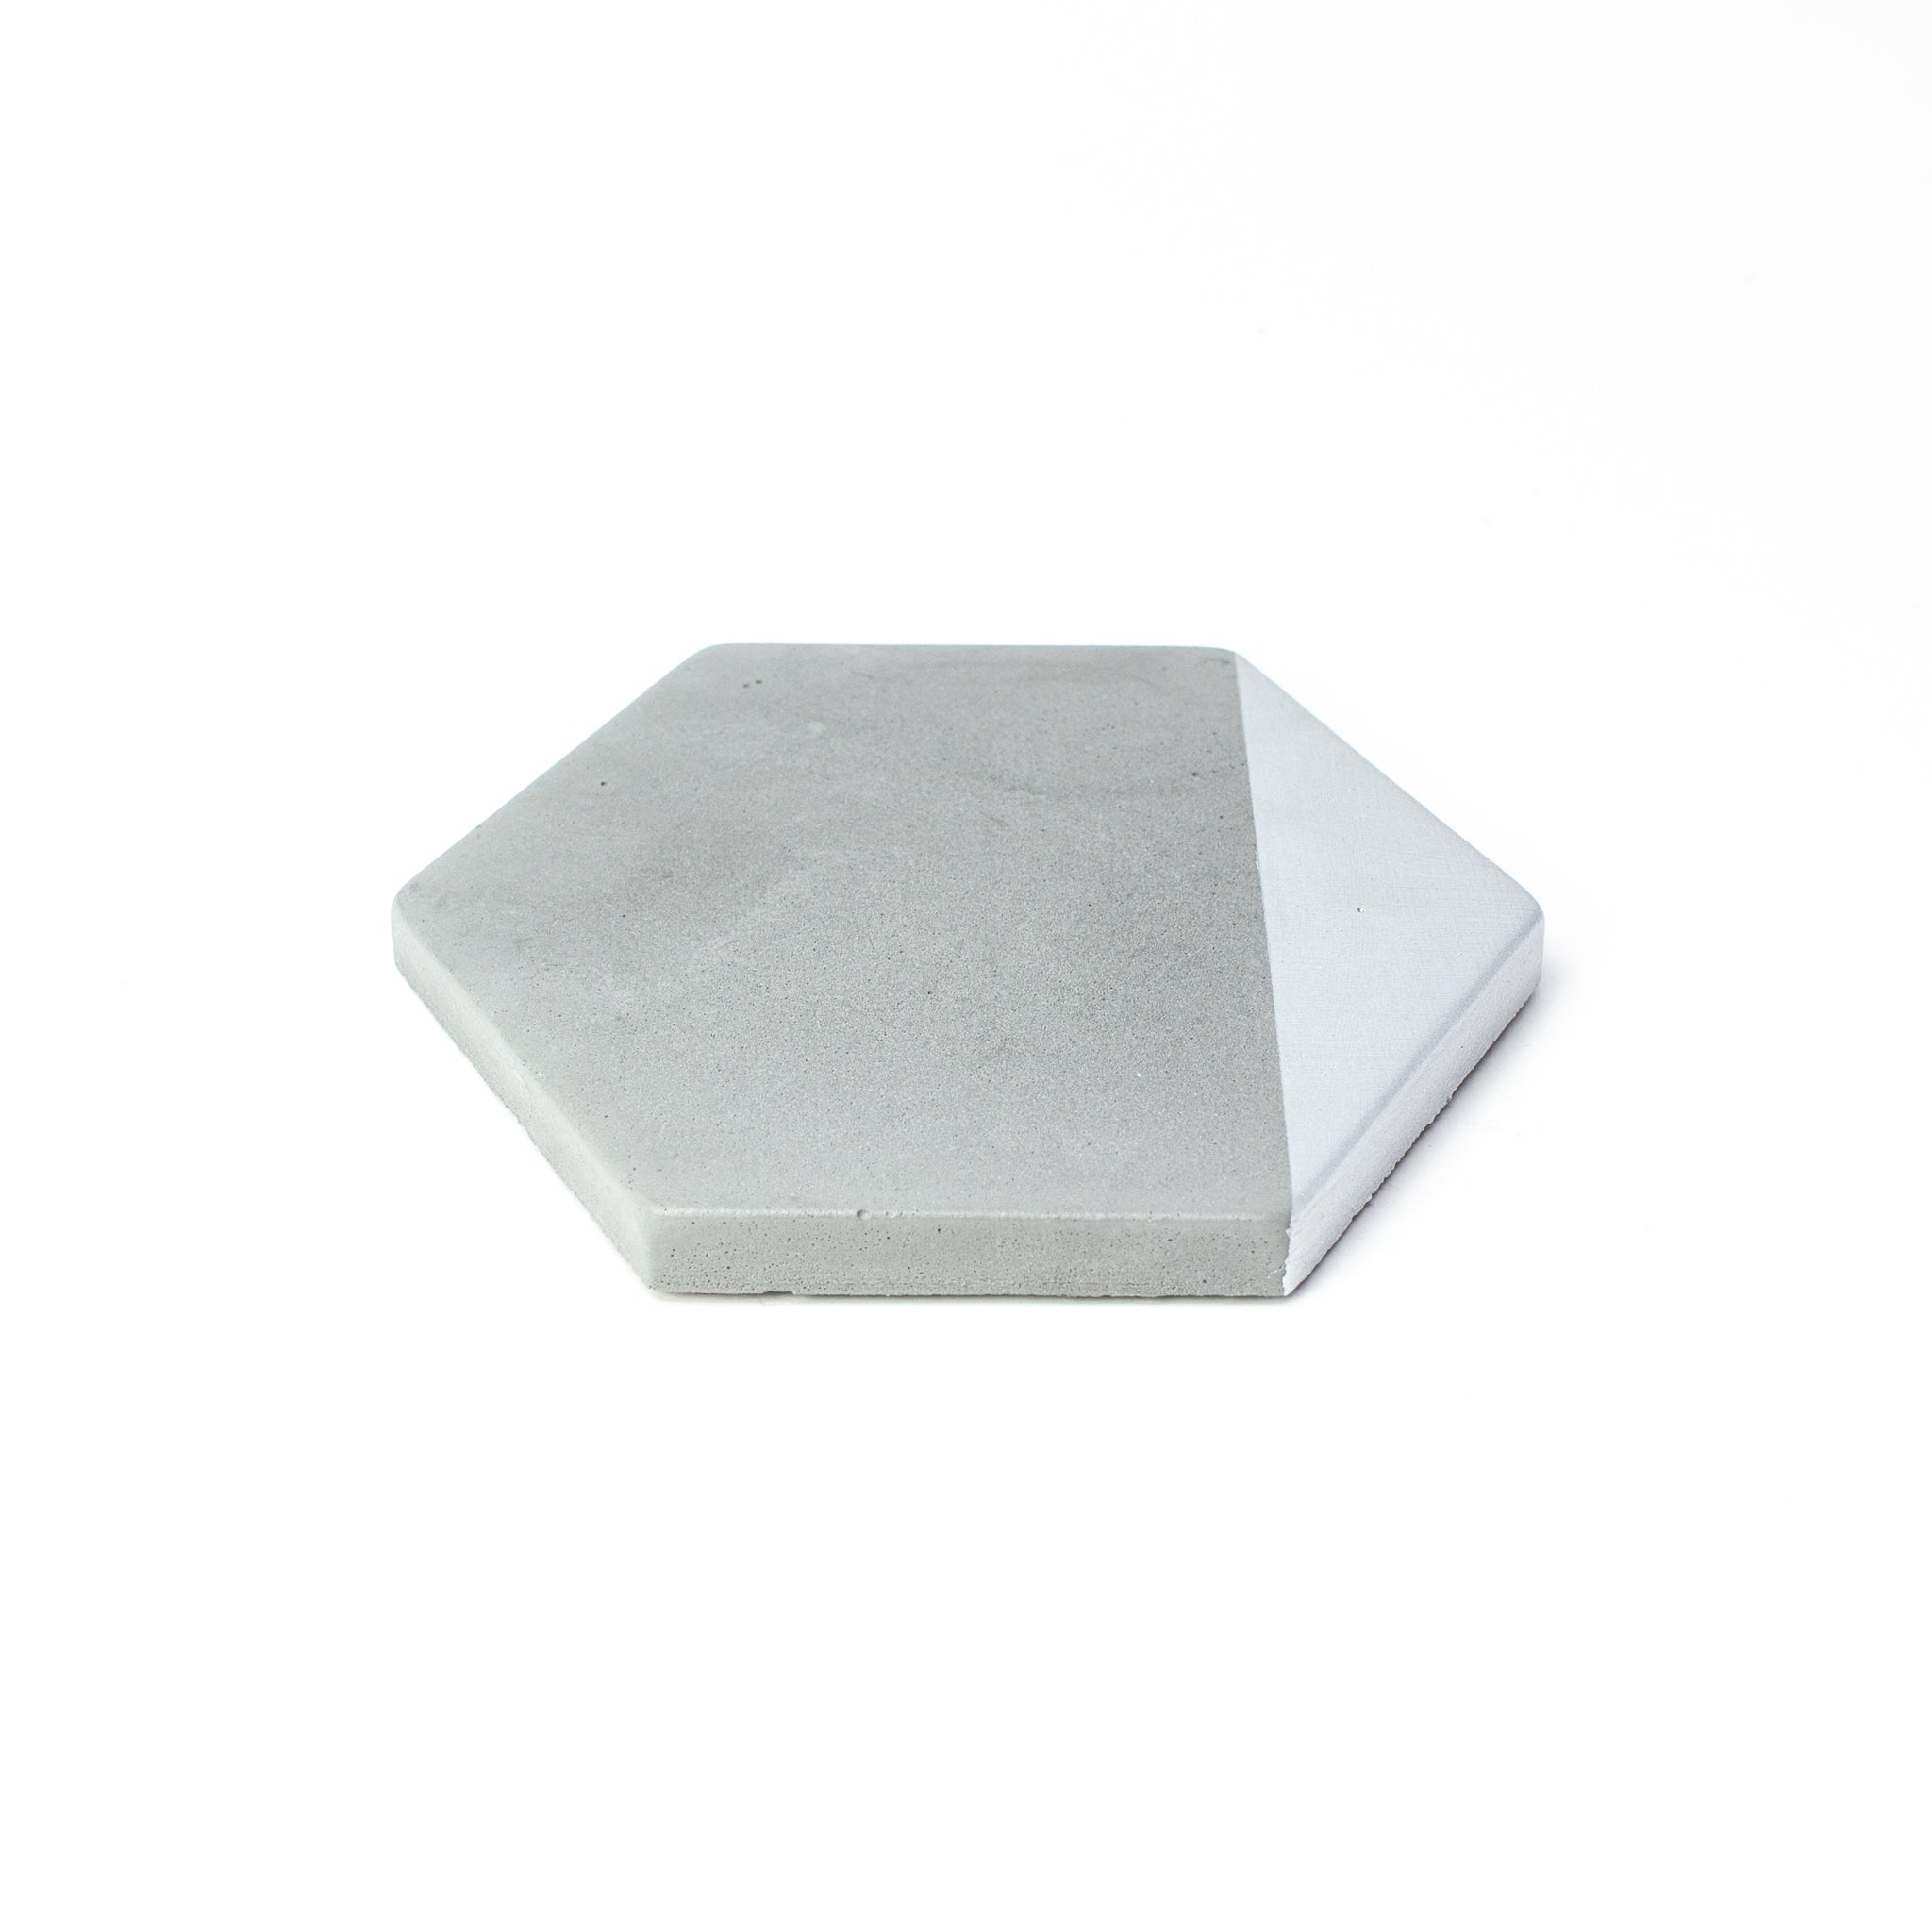 Concrete Hexagon Coaster: Silver